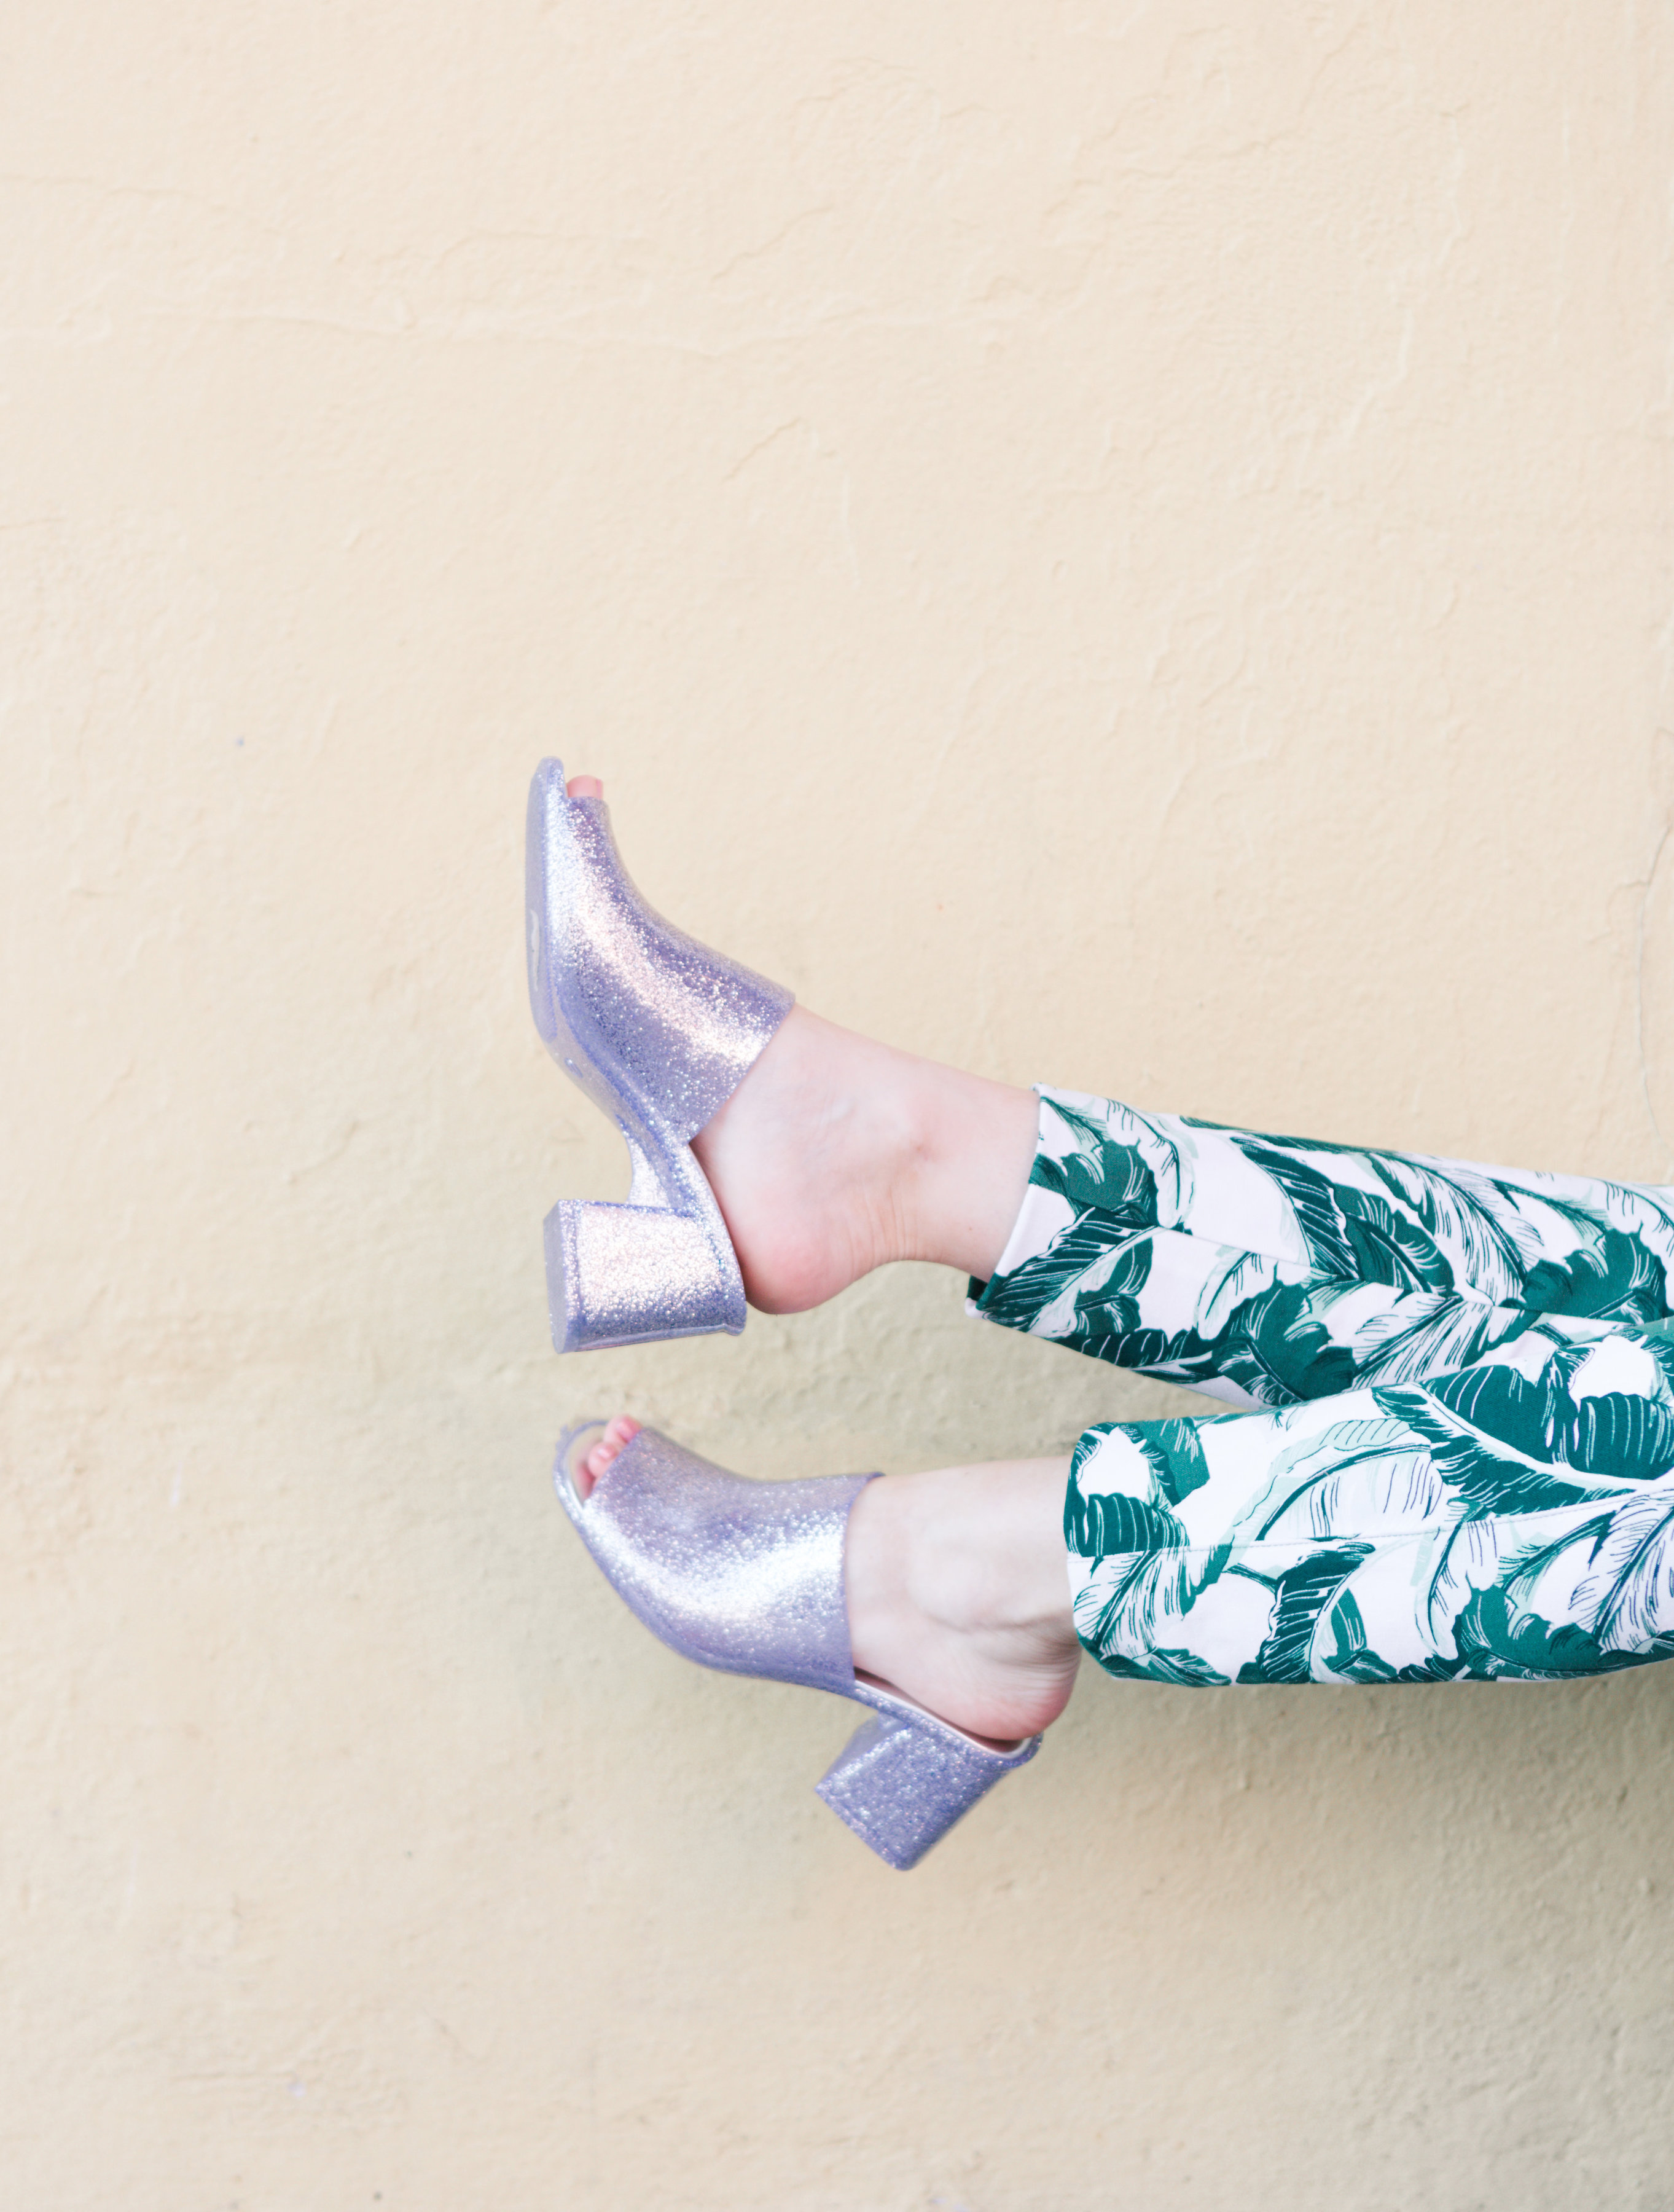 houston blogger, style blog, fashion blogger, gracefully sassy, old navy, jeffrey campbell, nordstrom, glitter mule, palm print, palm print pant, asos, white lace top, pravana, blogger, houston photographer, galveston